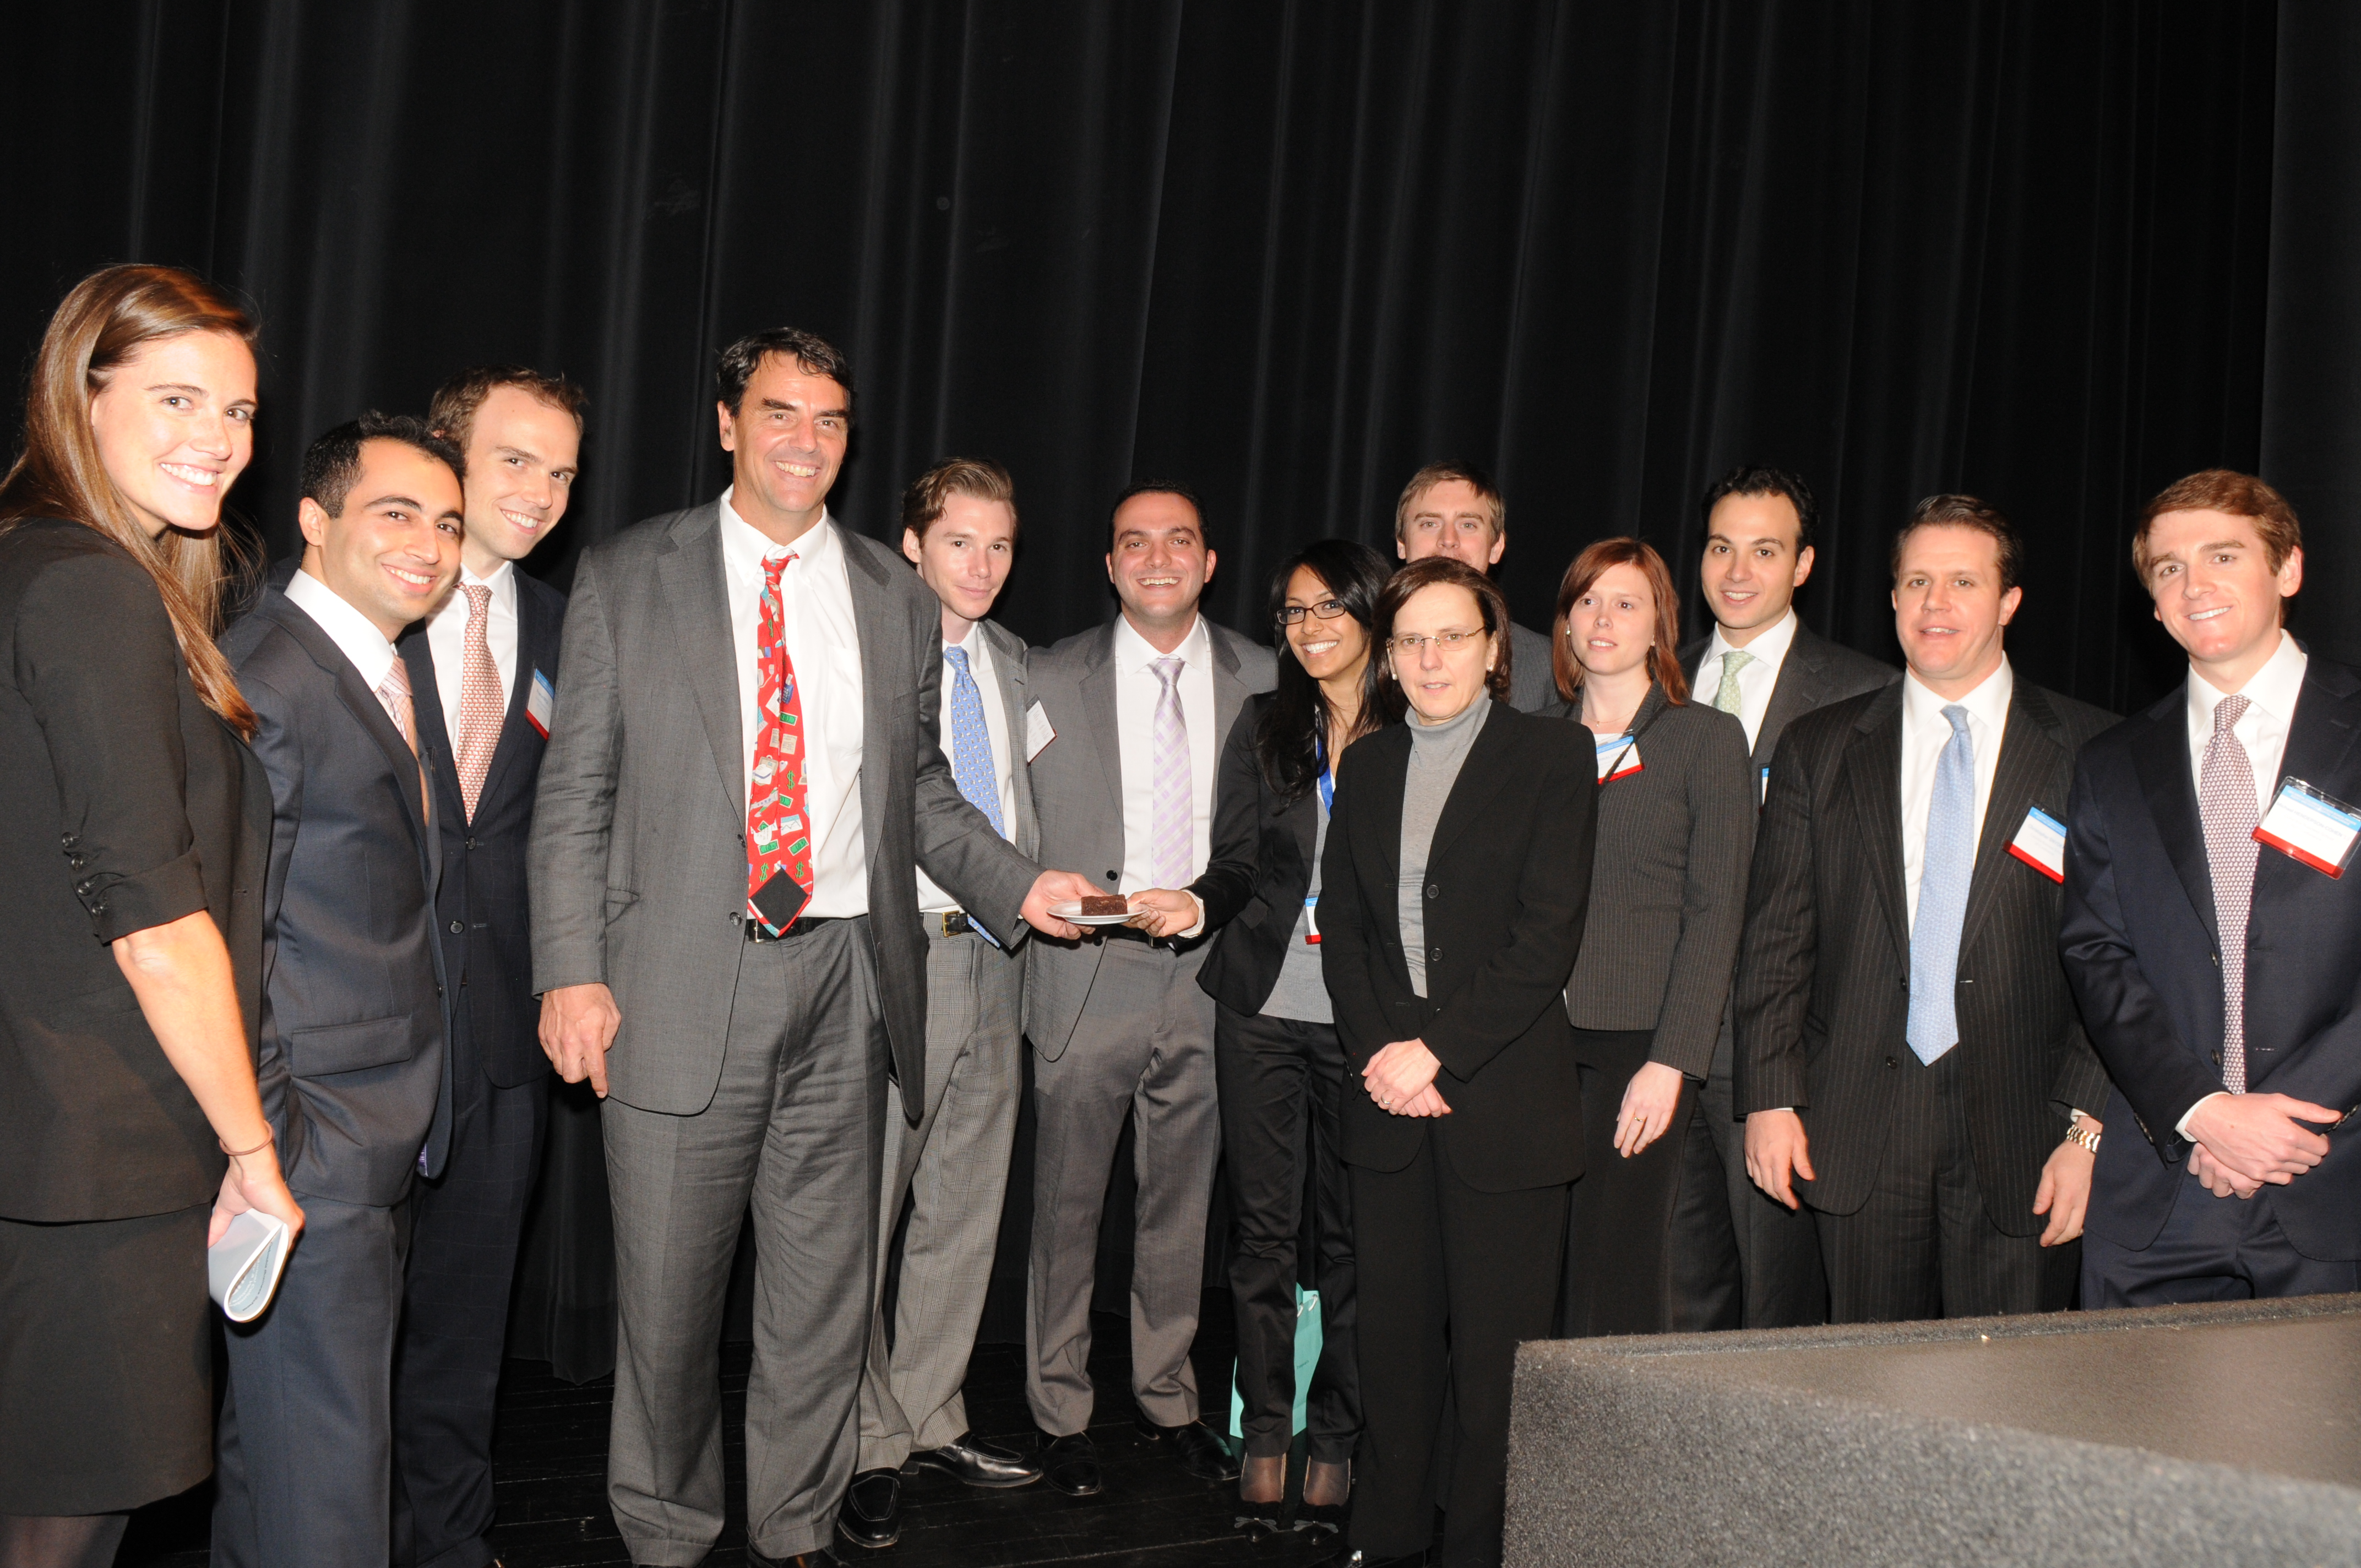 2012 conference team with keynotes